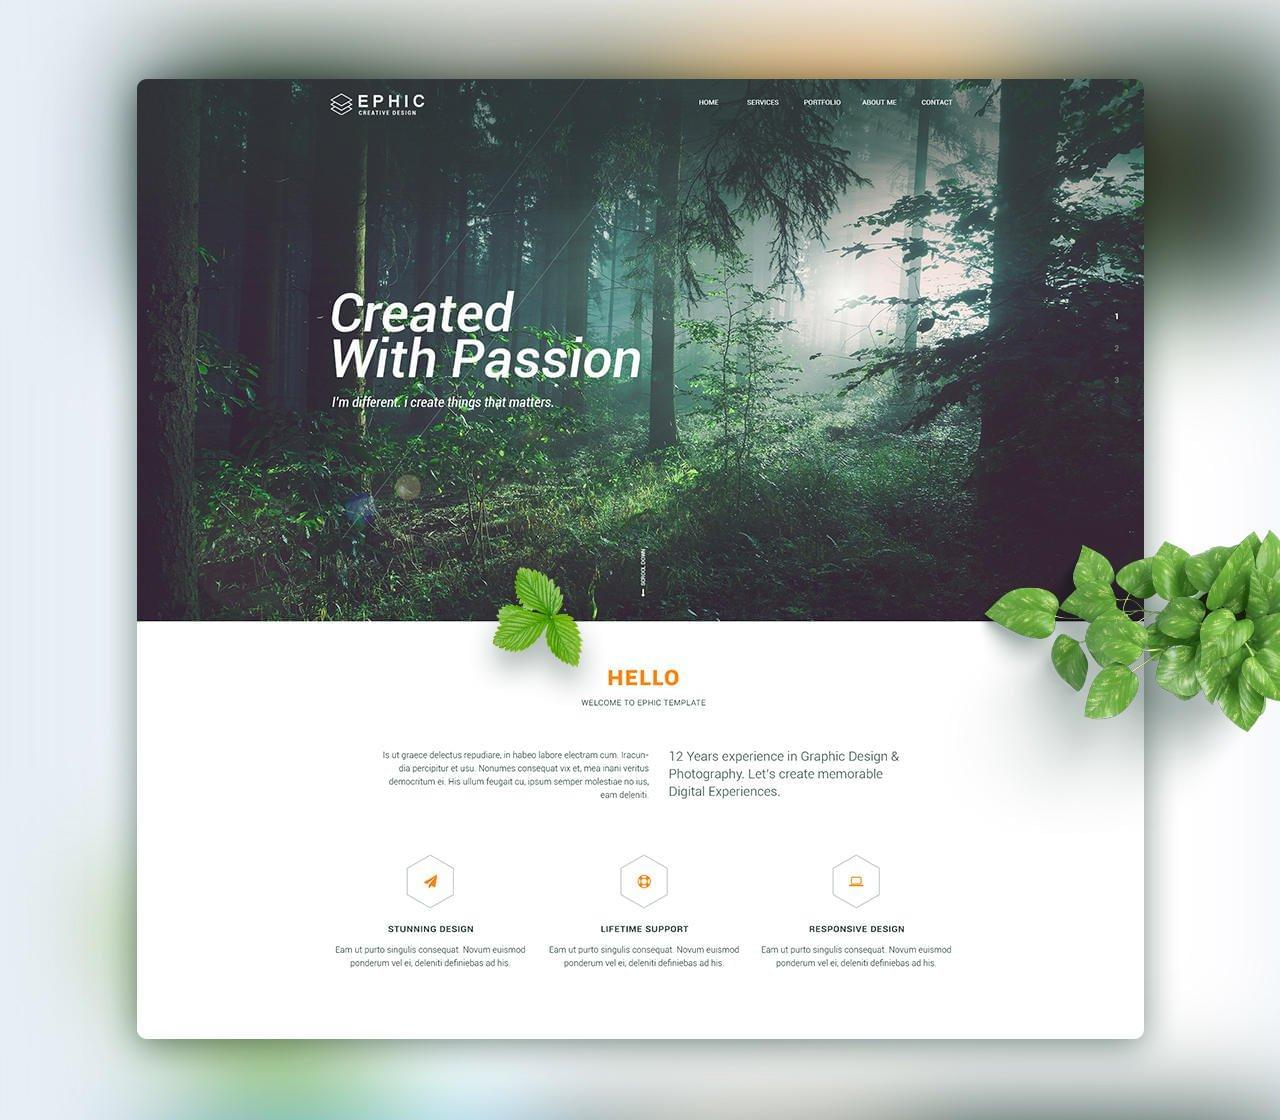 Professional  Home Page/Landing Page Design by KonnstantinC - 111781